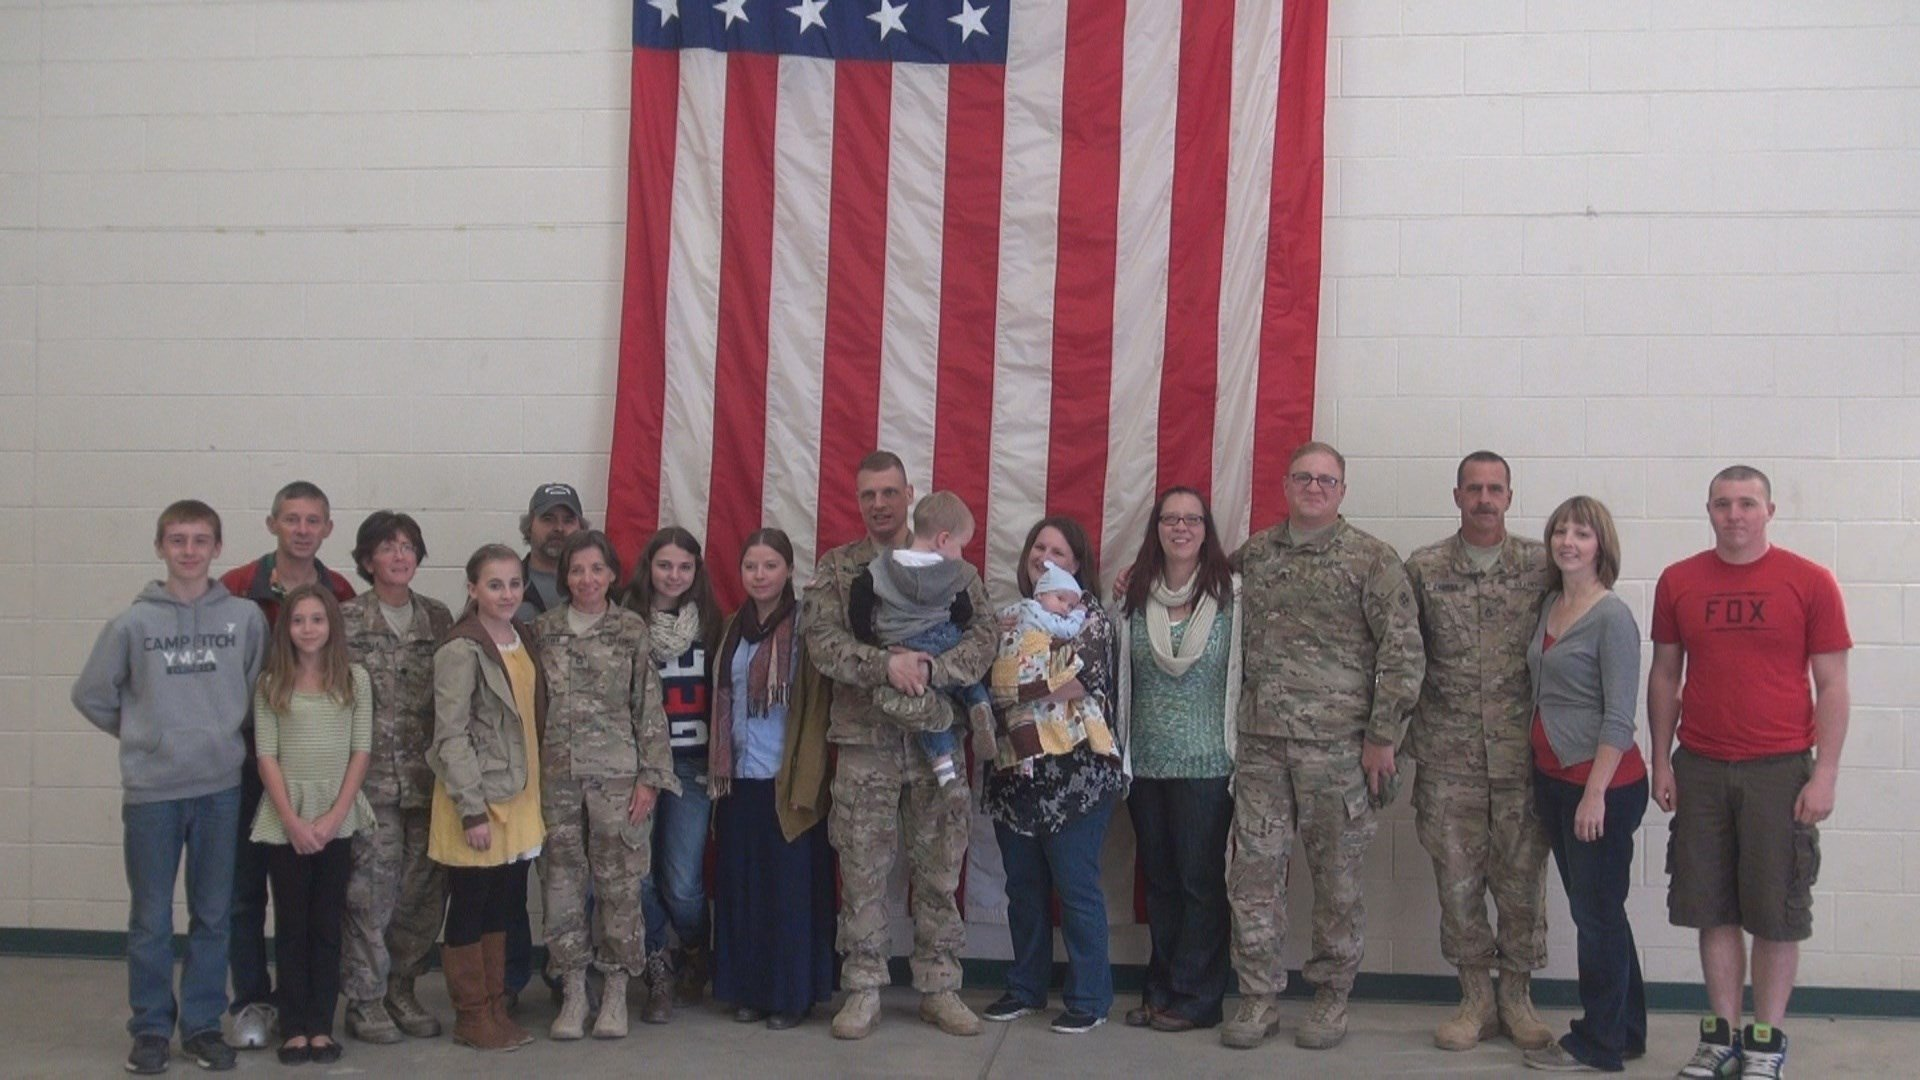 Members of the 328th QM DET and their families